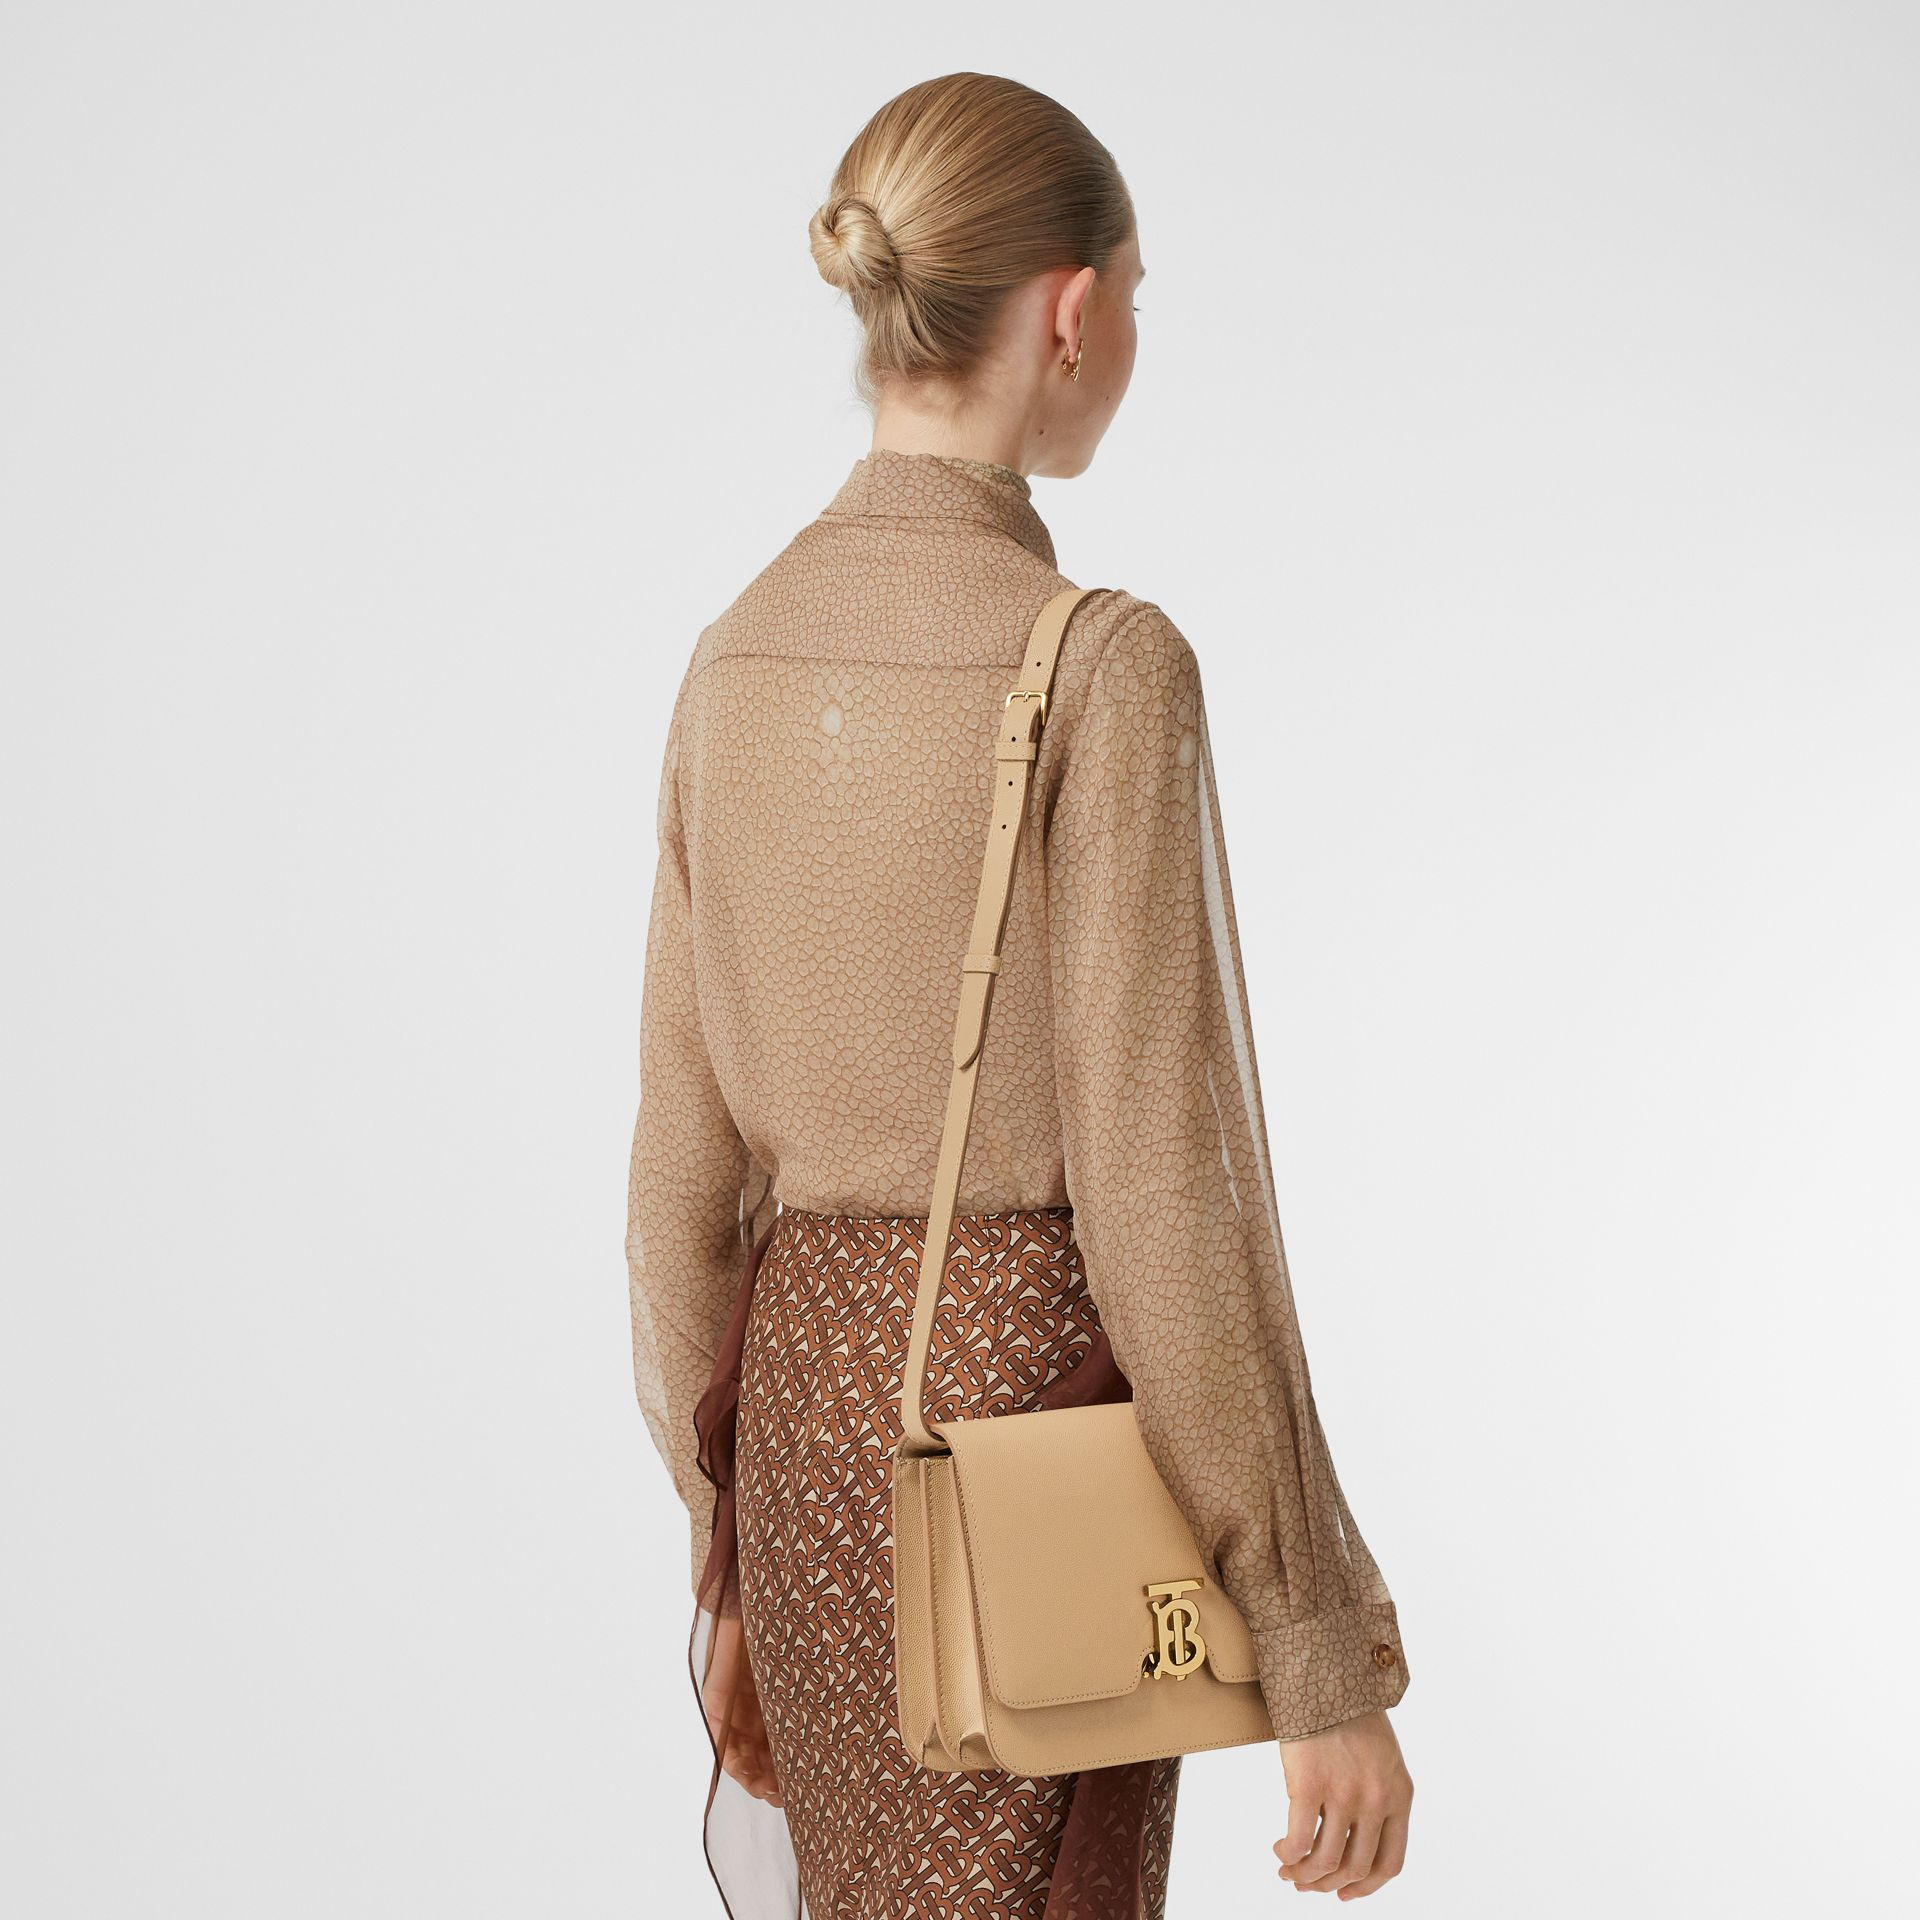 Medium Grainy Leather TB Bag in Archive Beige - Women | Burberry Hong Kong S.A.R - gallery image 2